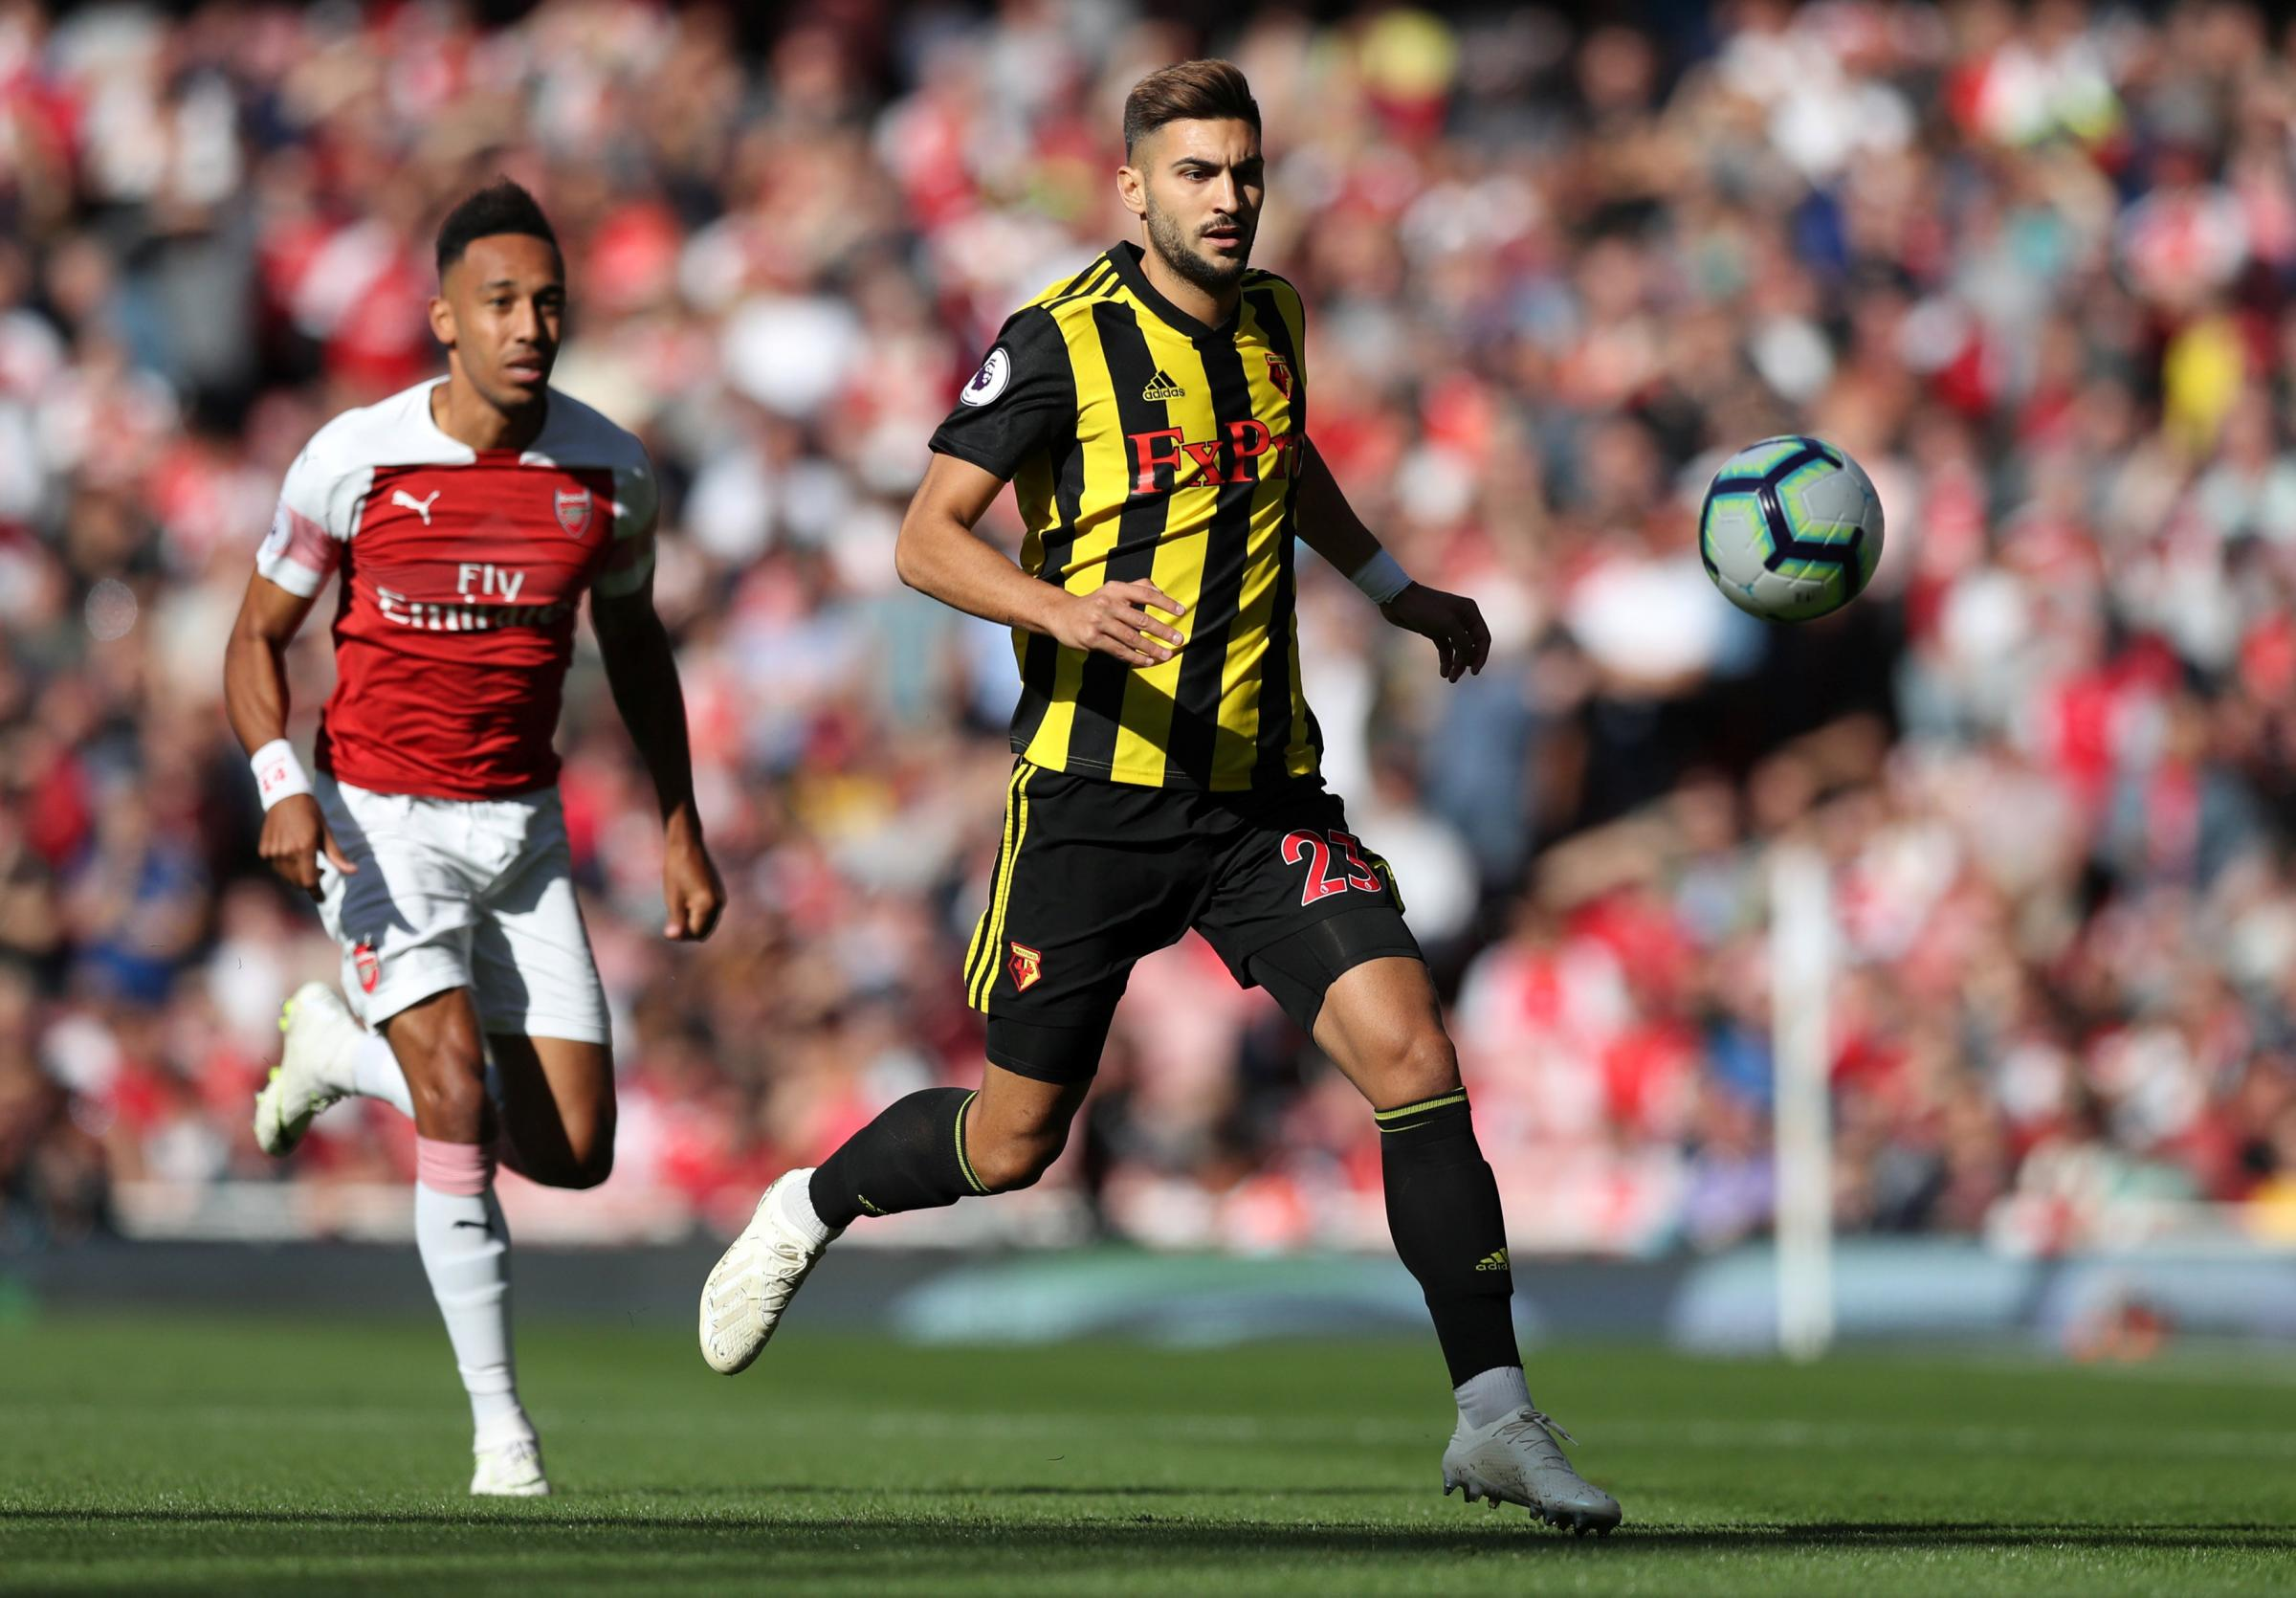 Marc Navarro is close to sealing loan switch from Watford to Leganes